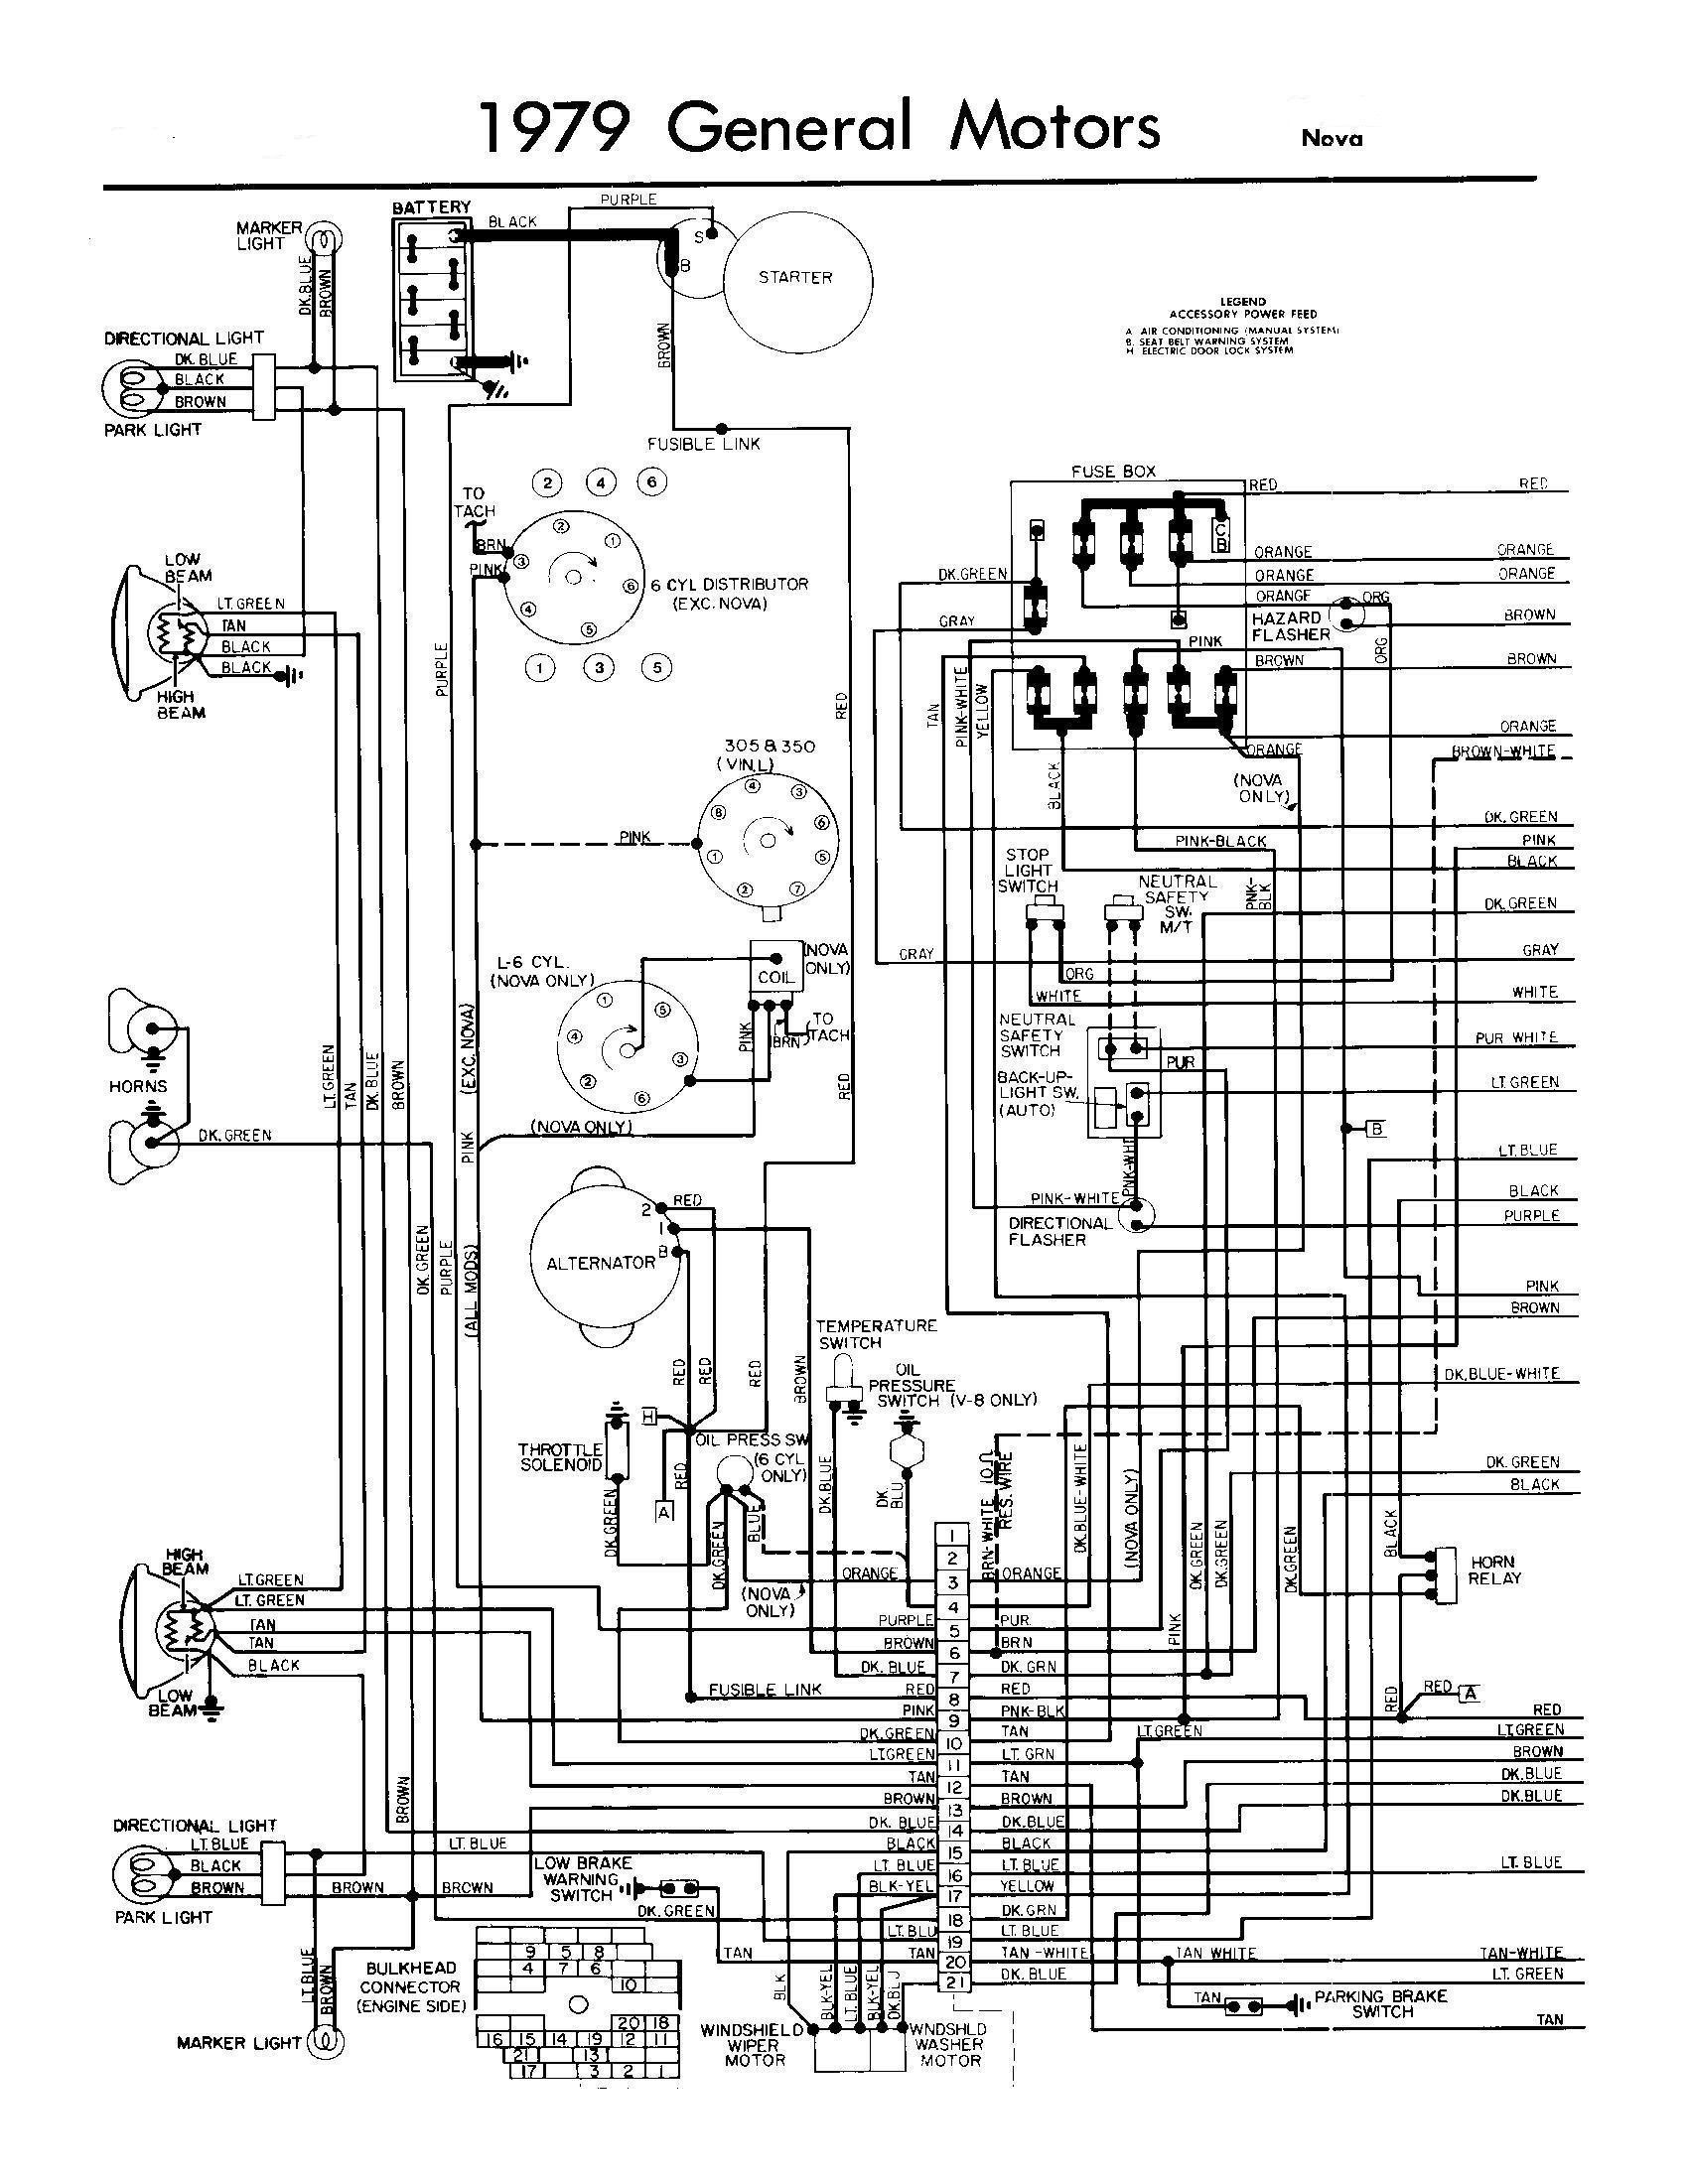 57 Chevy Alternator Wiring Diagram | Wiring Diagram on